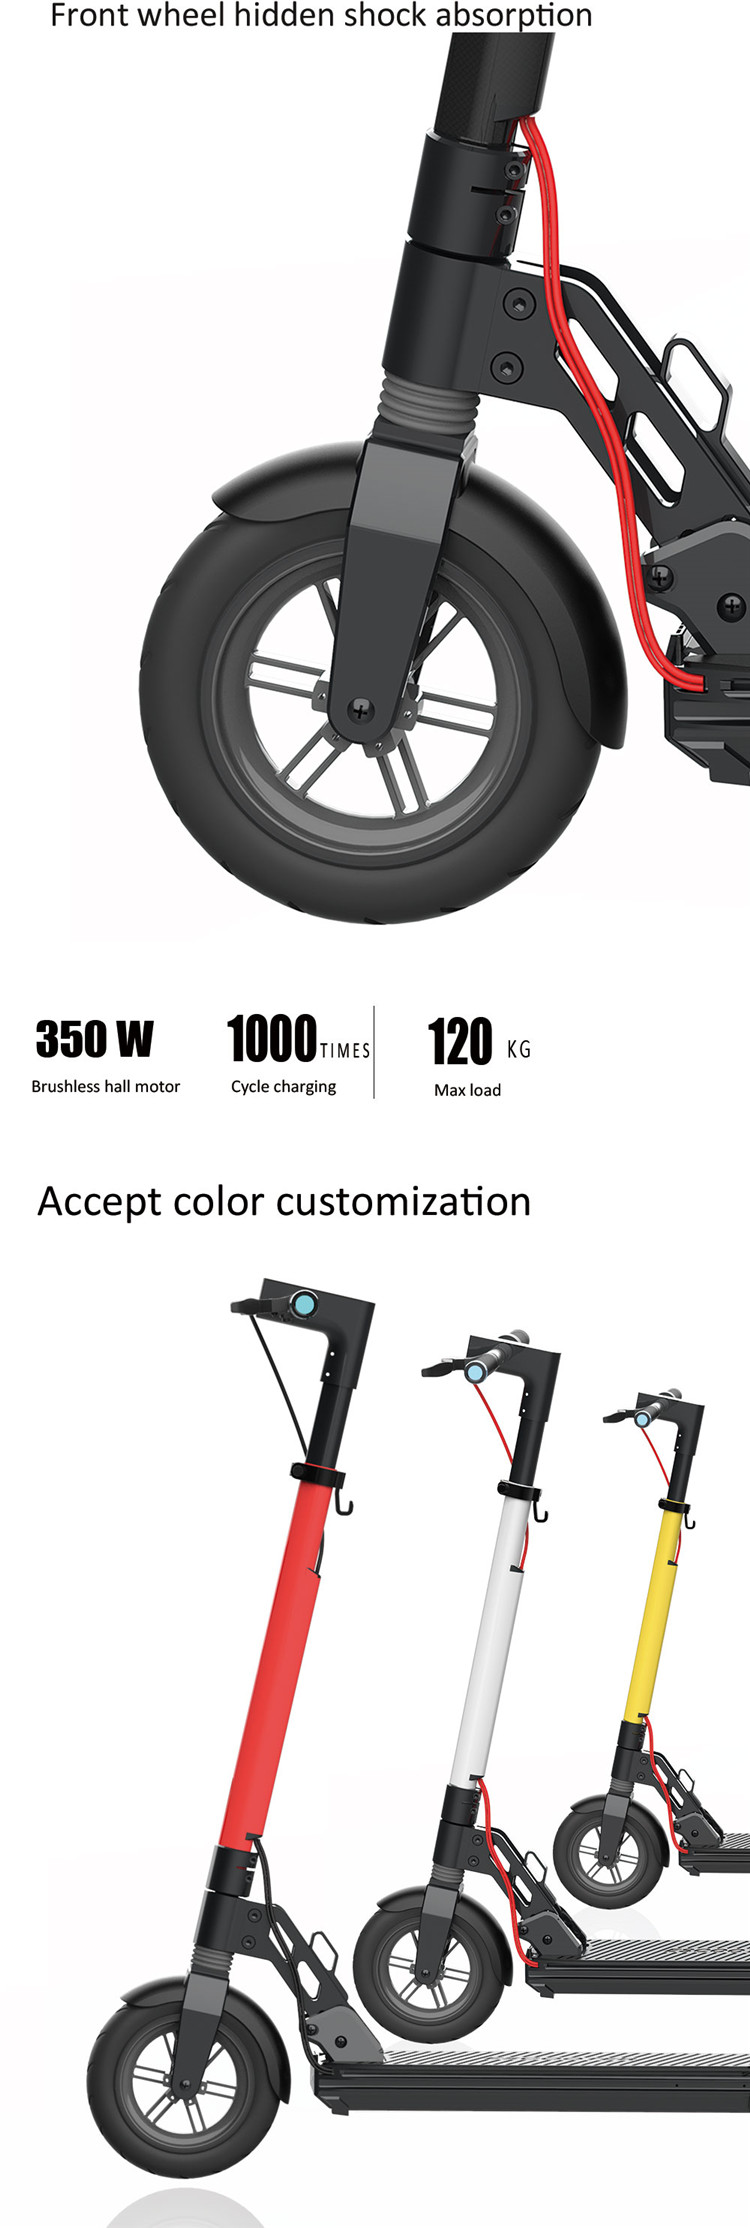 Color and Logo Customized Upgrade Swappable  Battery 25km/h Foldable Commuting Fitrider T2 Electric Scooter For Adult